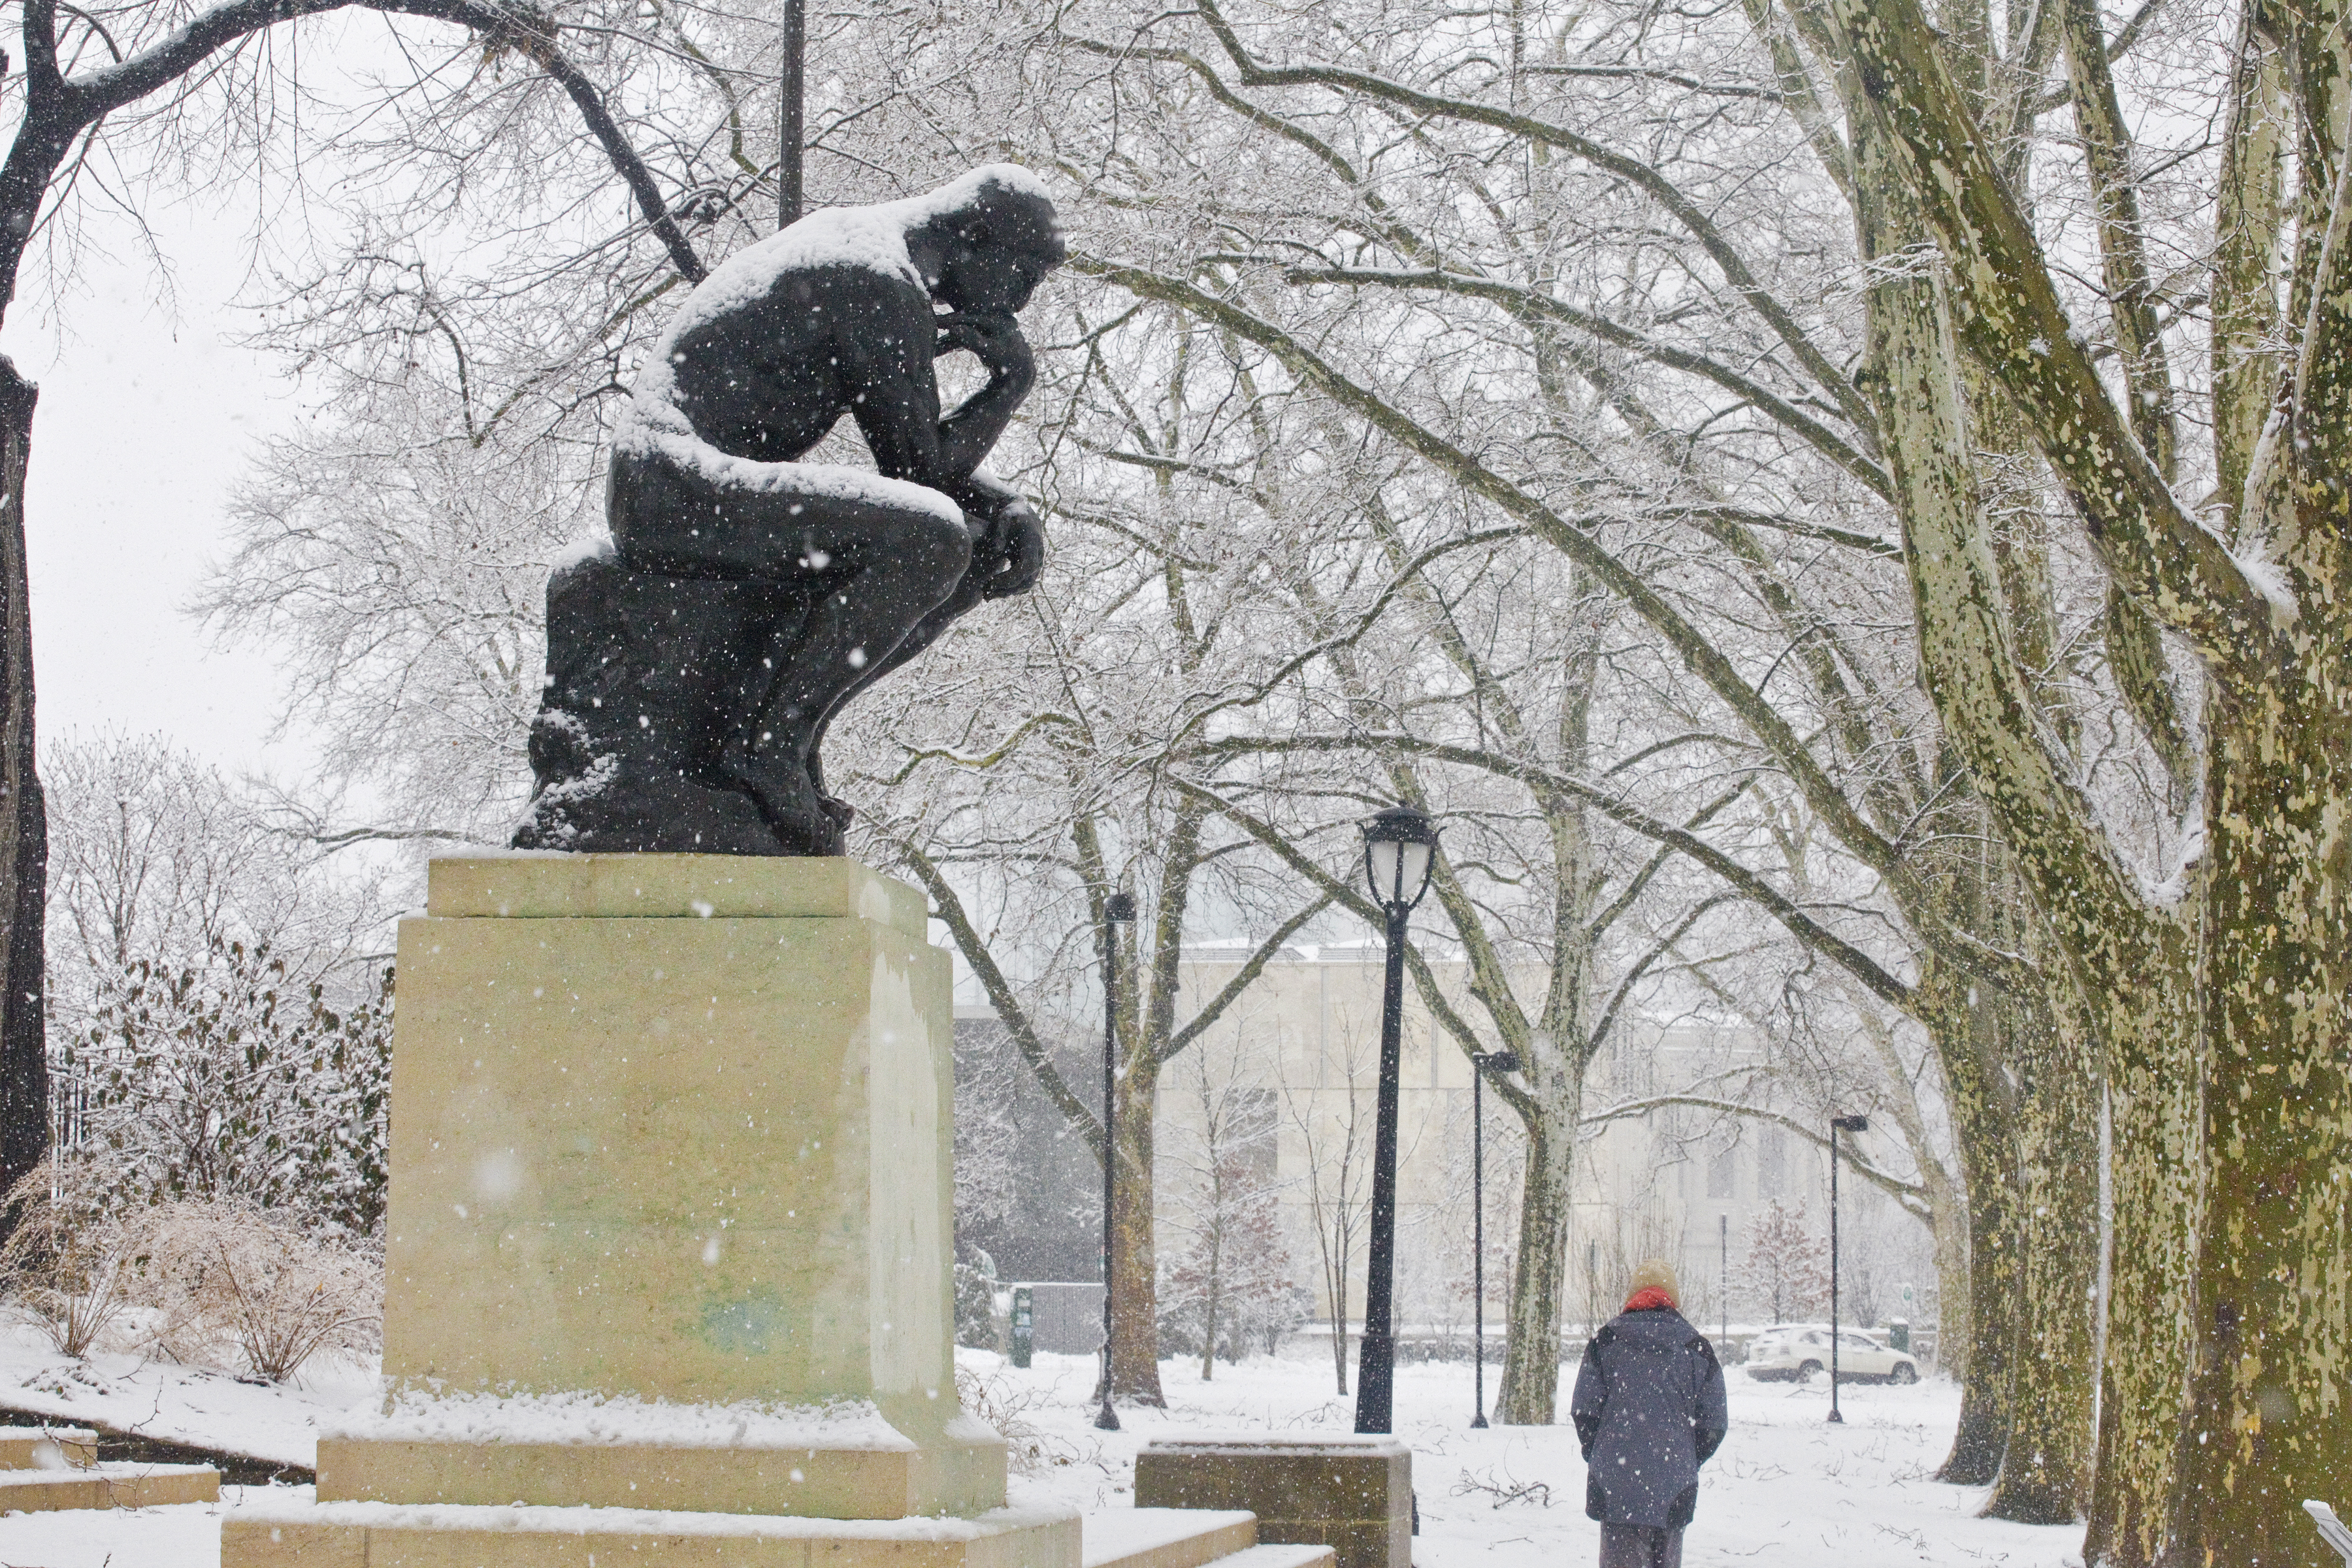 The Thinker looks even more pensive with a dusting of snow. Situated along Philadelphia�s culture-packed Benjamin Franklin Parkway, the Rodin Museum houses the largest collection of the works of Auguste Rodin outside of his native France.